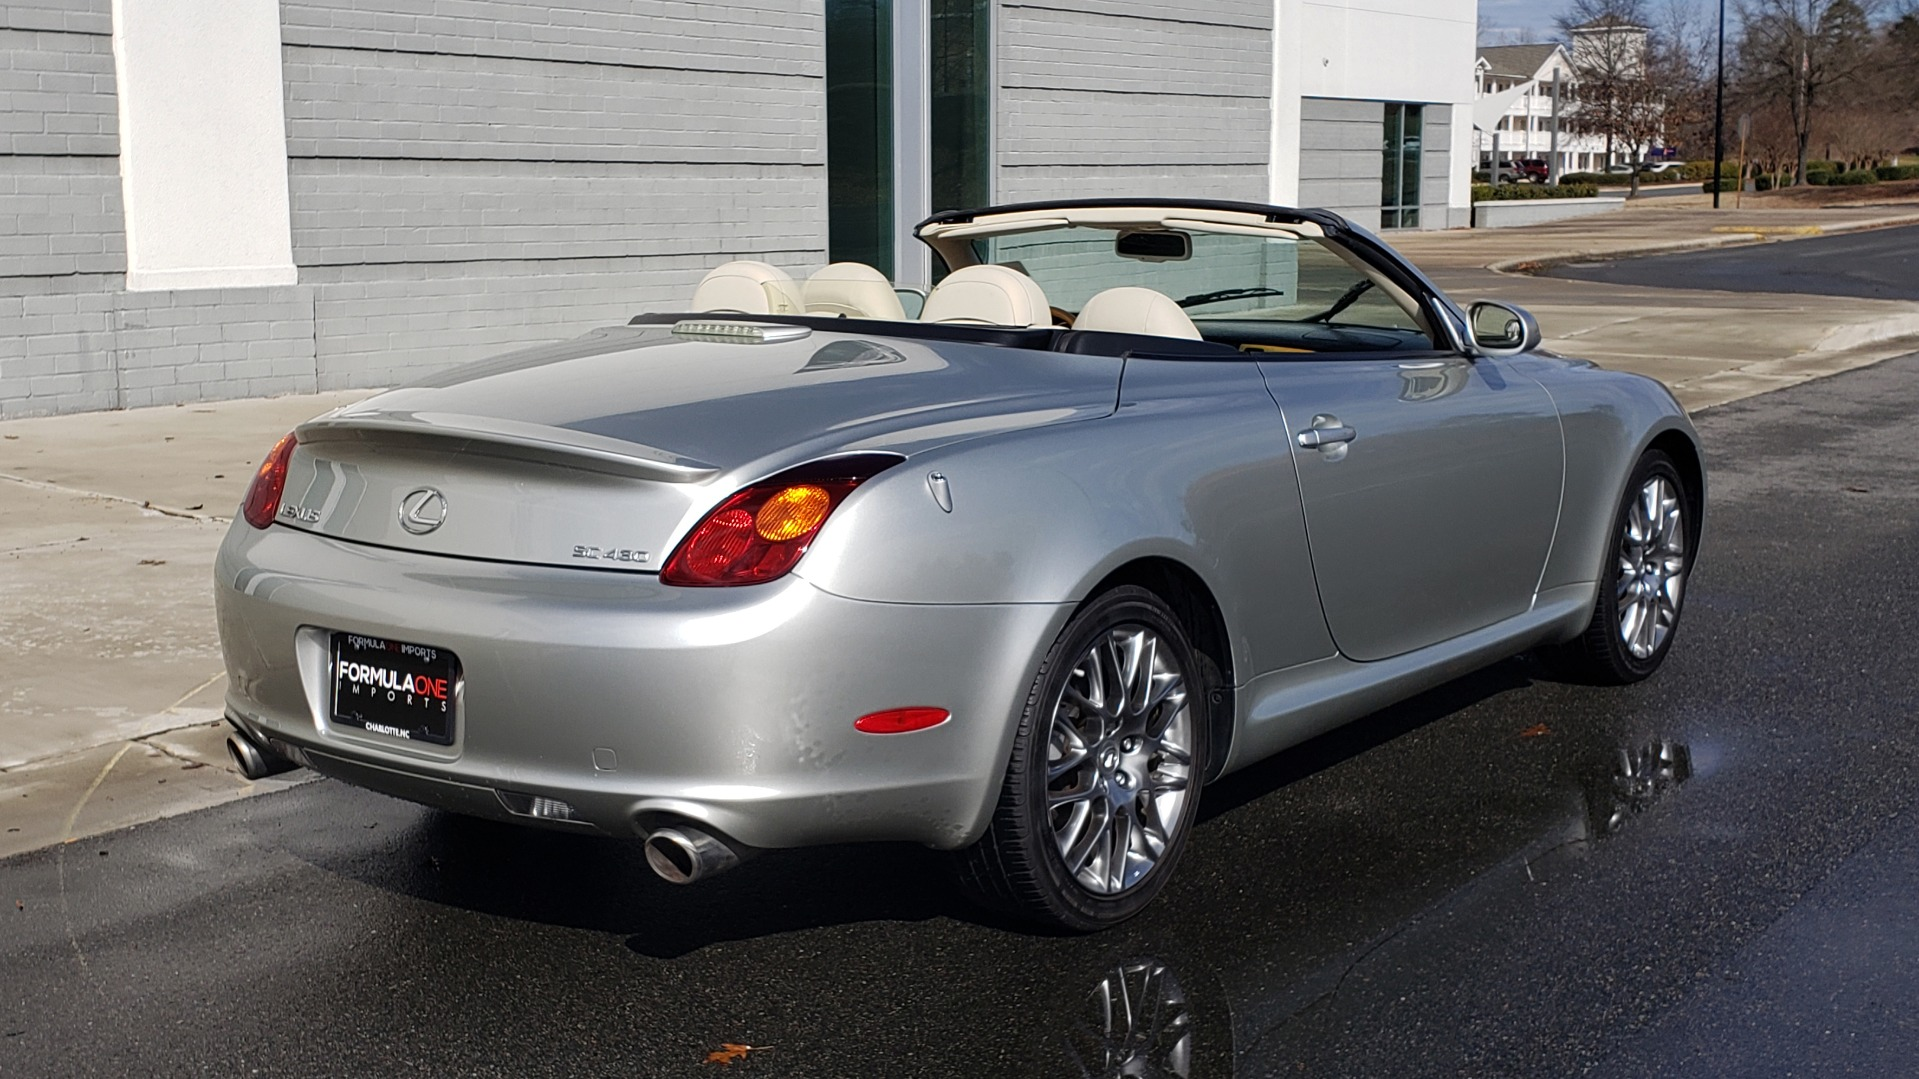 Used 2004 Lexus SC 430 CONVERTIBLE / 4.3L V8 / 5-SPD AUTO / MARK LEVINSON / 18IN WHEELS for sale $14,995 at Formula Imports in Charlotte NC 28227 16